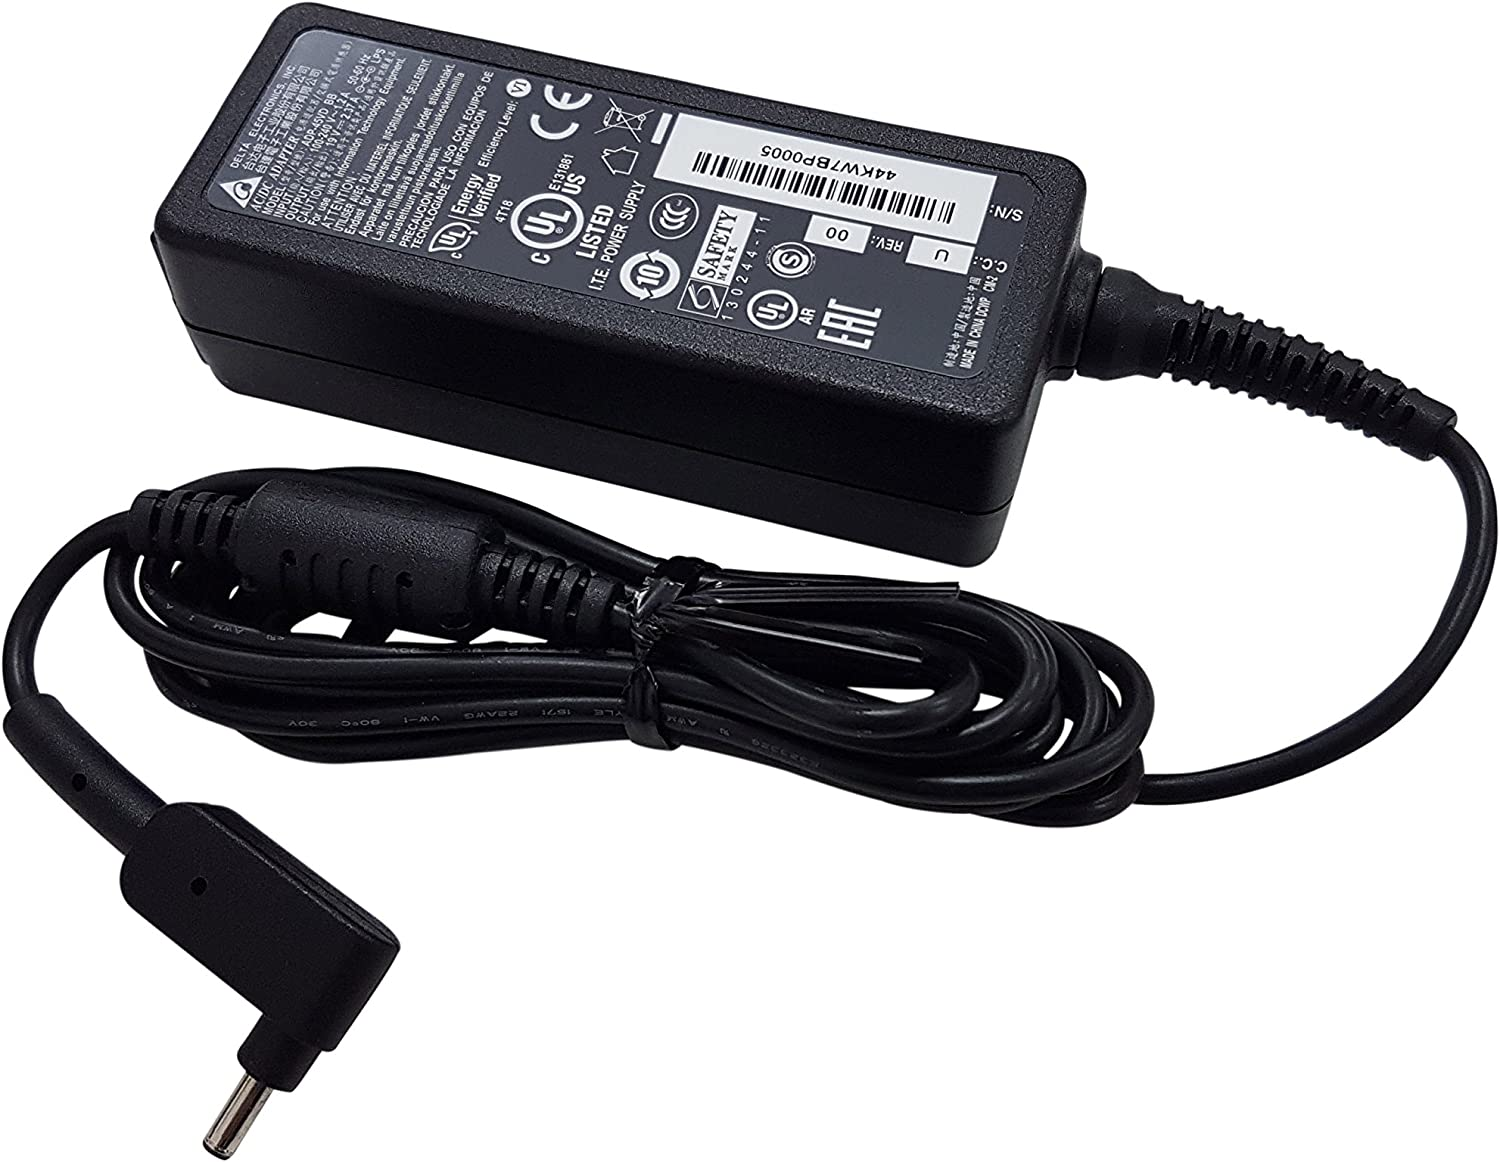 "Delta Electronics Laptop Charger for Acer Chromebook C732LT-C2NH CB3-532-108H CB3-532-C47C CB3-532-C968 Spin SP314-53N Swift SF314-56 Packard Bell Cloudbook Pro 11.6"" 14.5"" 19V 2.37A 45W Adapter"